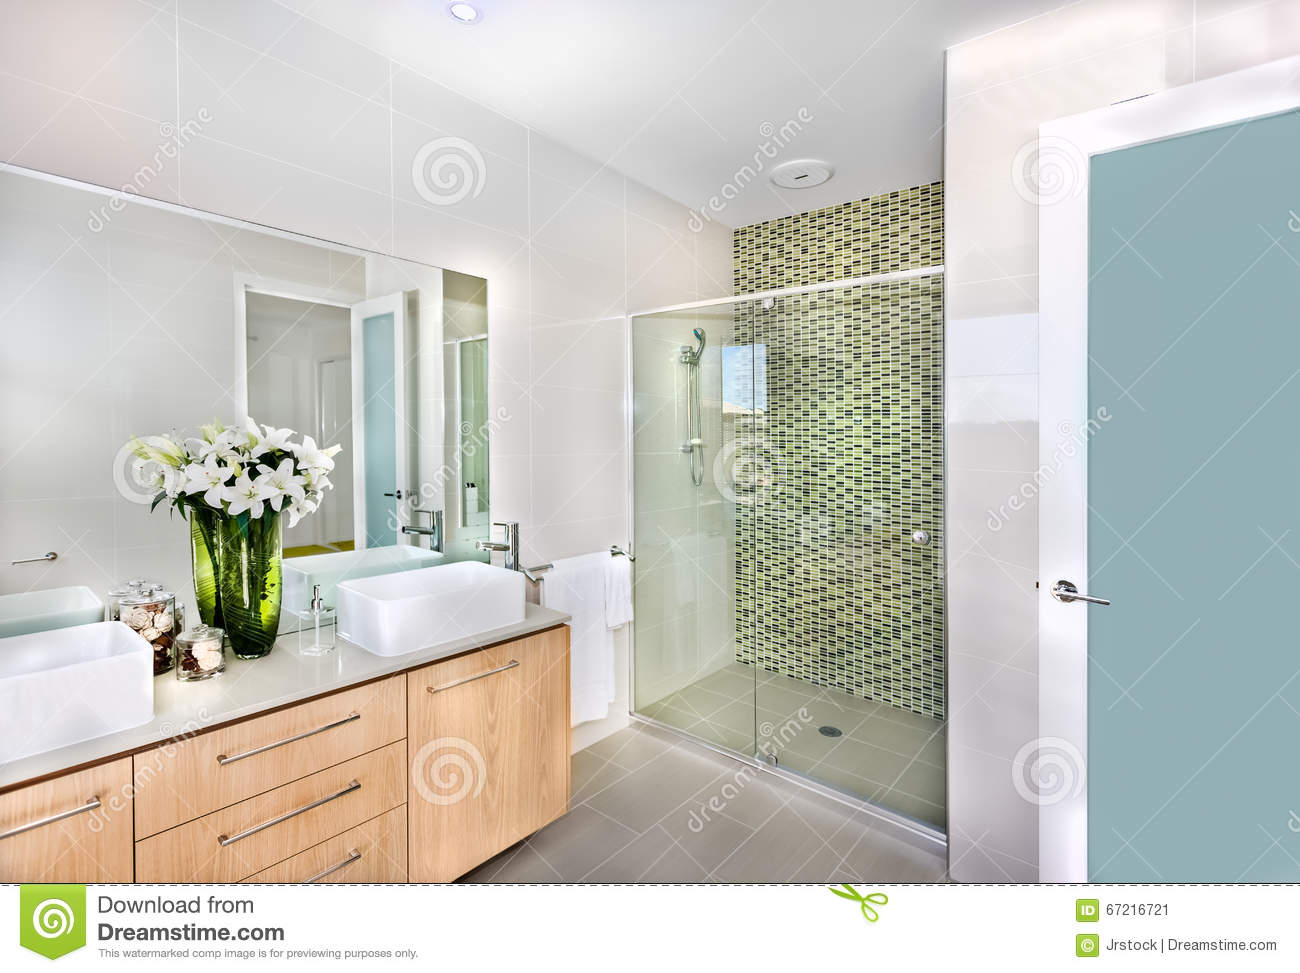 A Modern Bathroom With White Flowers In The Vase